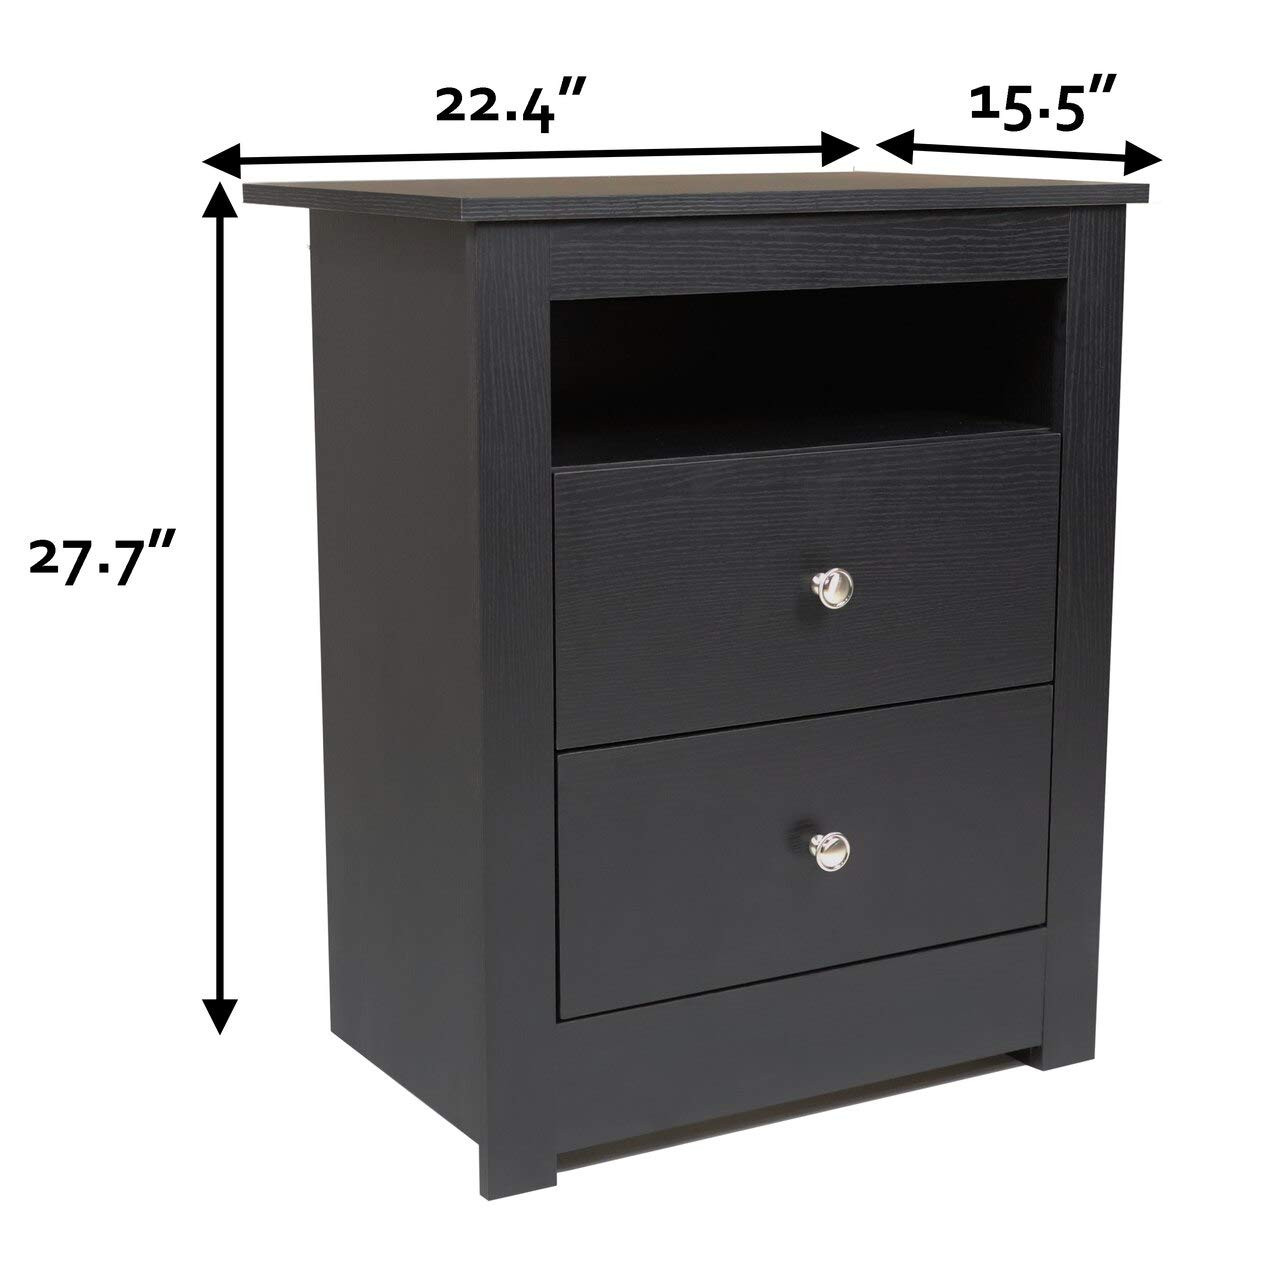 Cap Living Wood Bookcase Headboard With Storage Bedroom Bookcase Headboard Queen Size Two Multipurpose Wood Night Stand End Table Accent Table